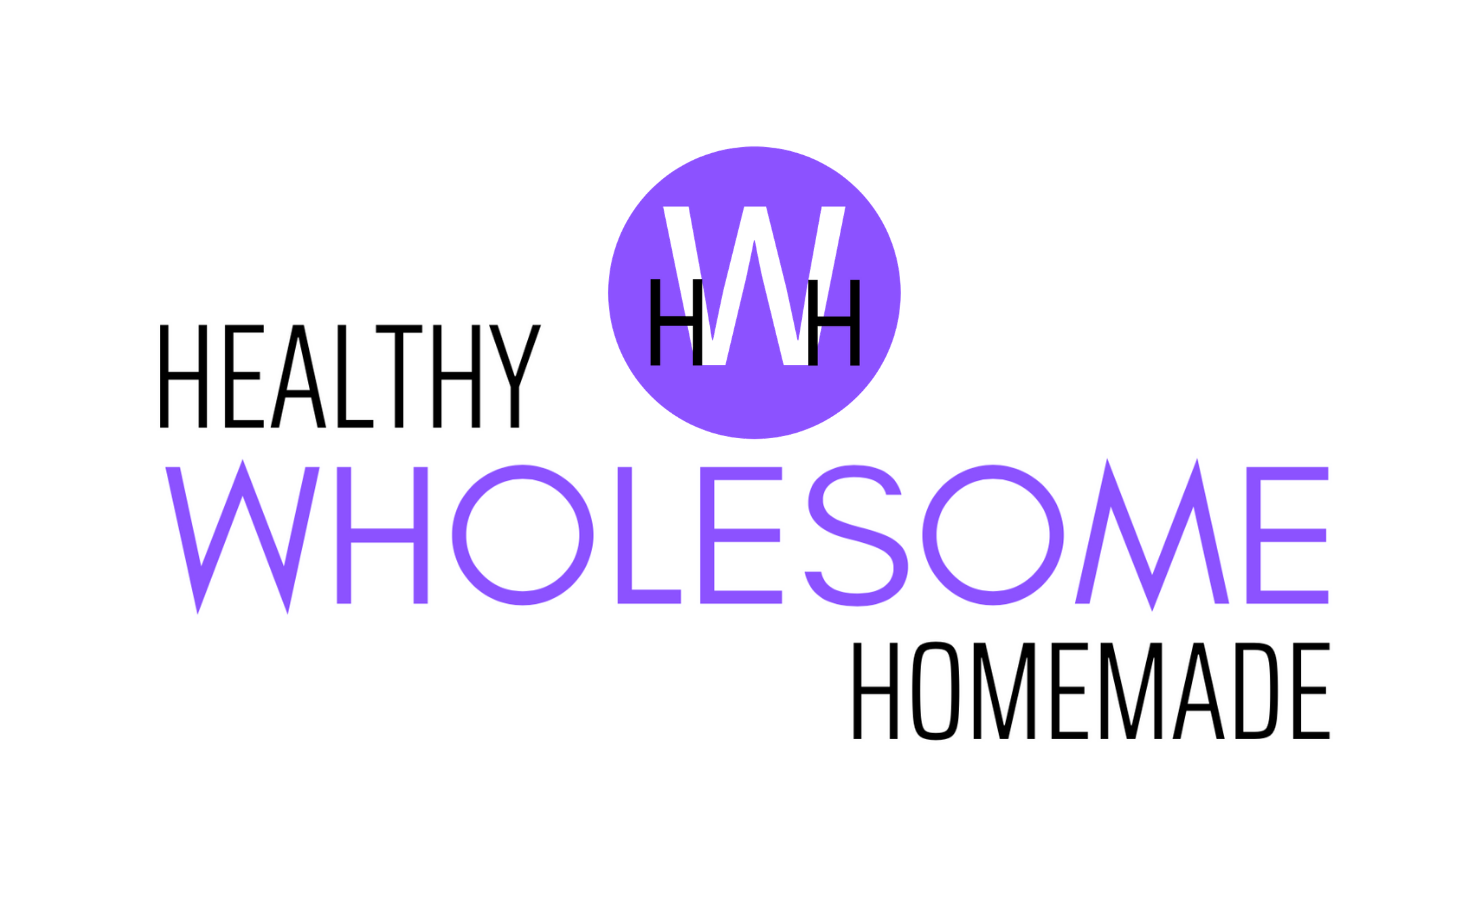 Healthy Wholesome Homemade